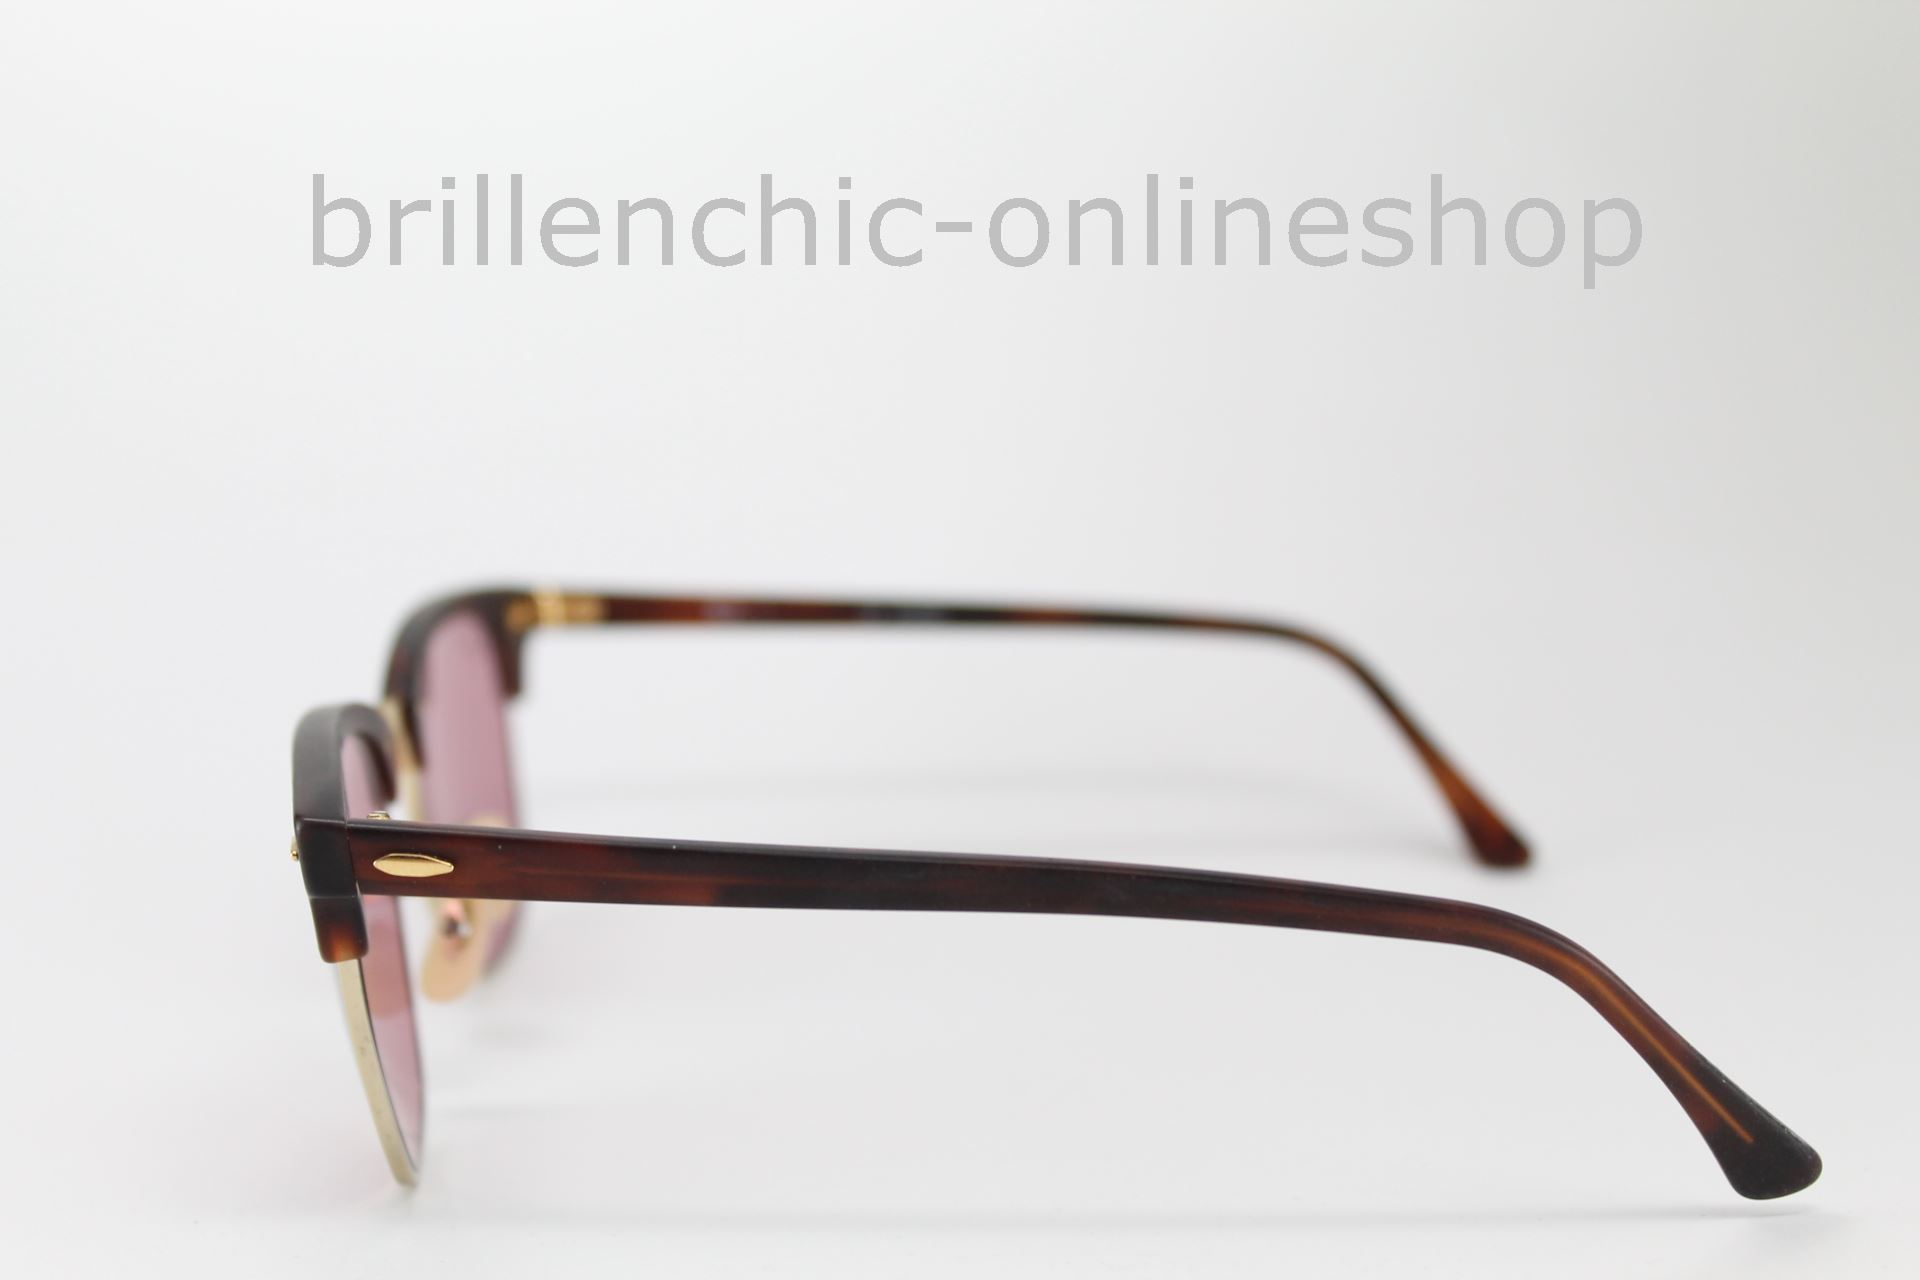 fdd17b11623 Brillenchic-onlineshop in Berlin - Ray Ban CLUBMASTER RB 3016 1145 ...